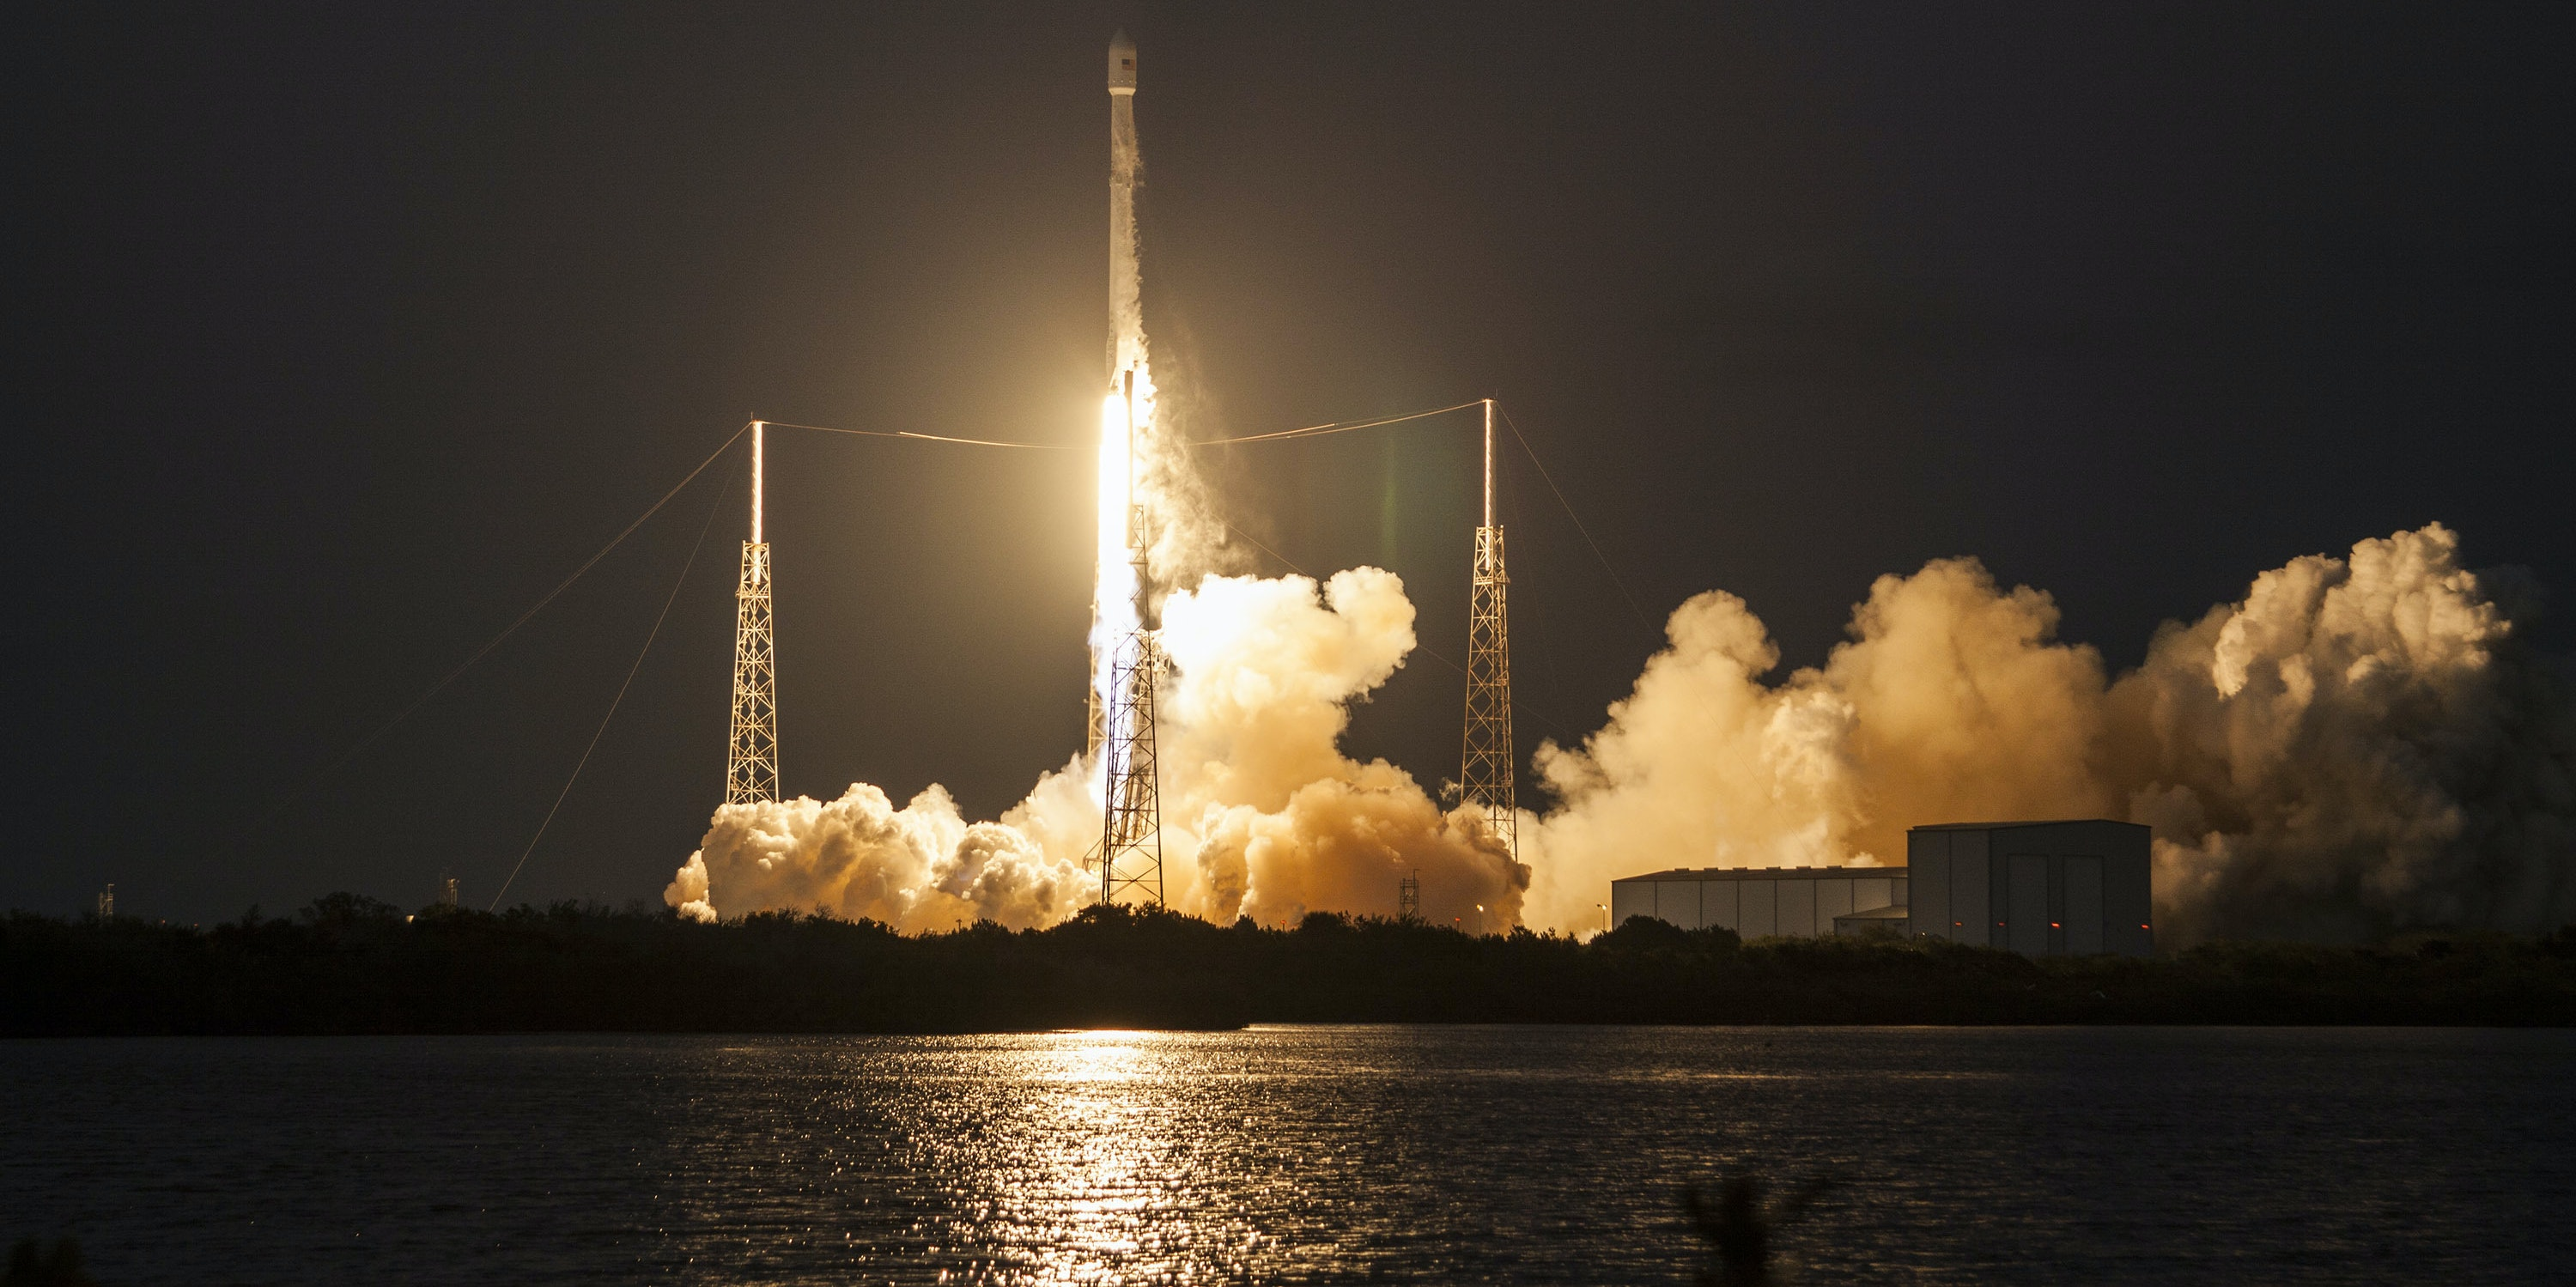 In this handout provided by NASA, SpaceX's Falcon 9 rocket makes a successful launch with the SES-9 communications satellite on March 4, 2016 in Cape Canaveral, Florida.